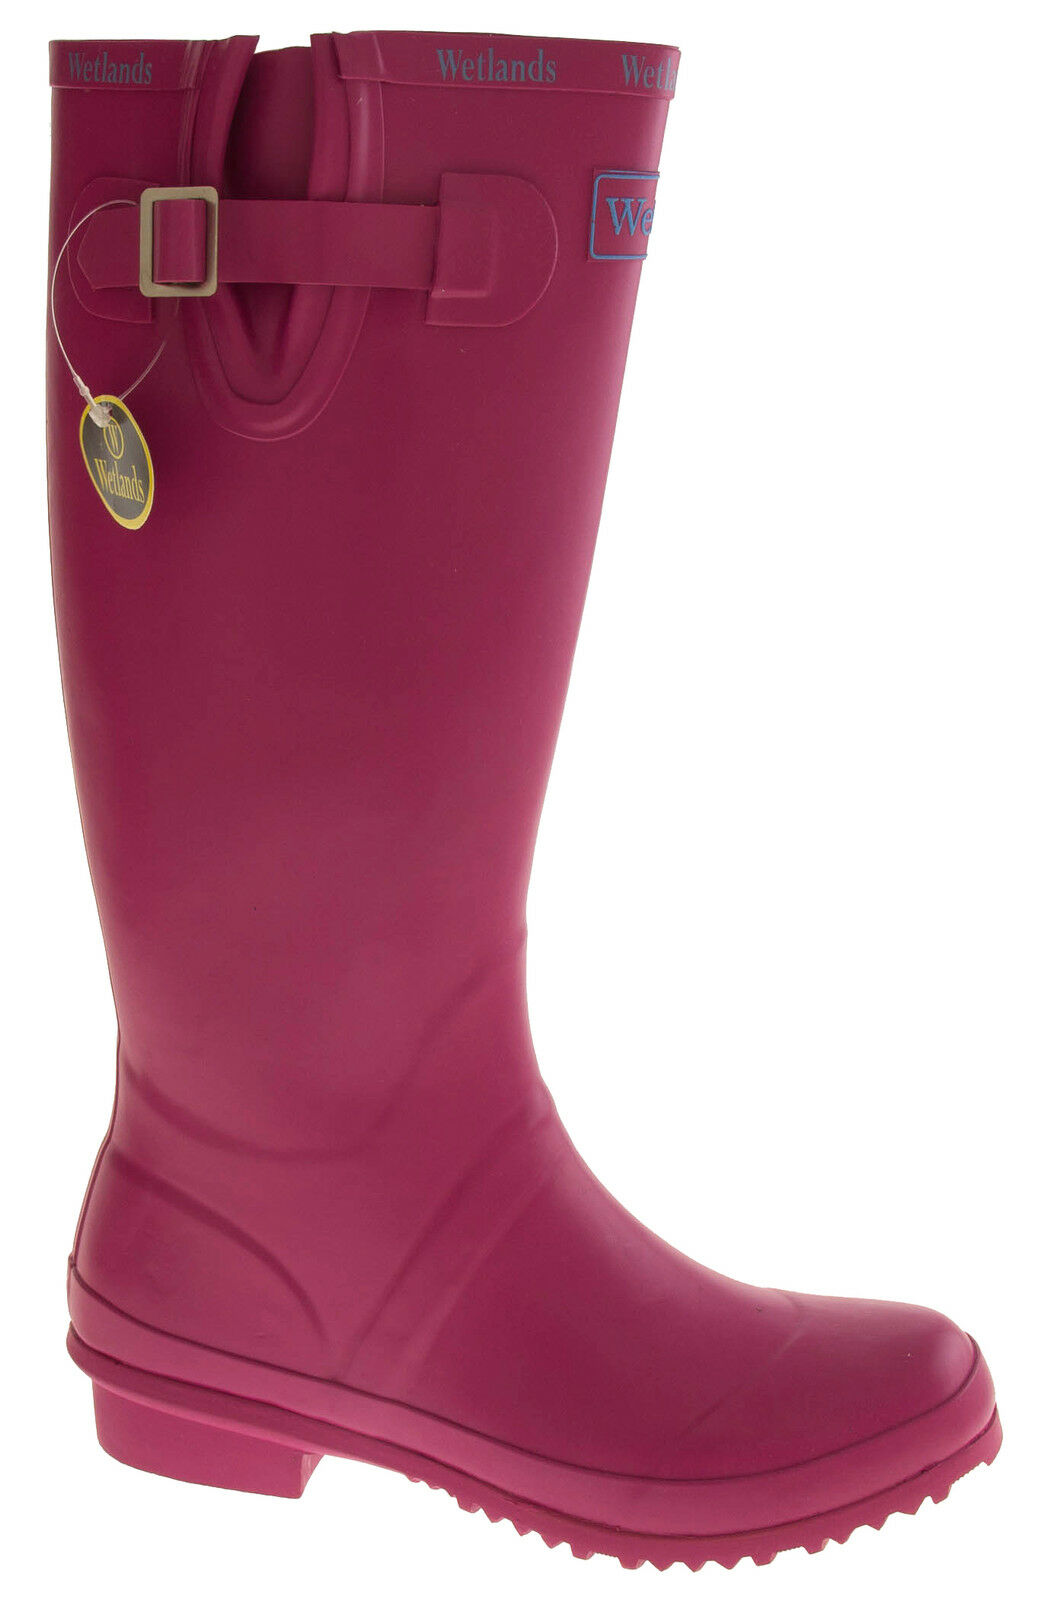 NEW Womens Pink WETLANDS Festival Garden Wellies Wellington Boots Size 4 5 6 7 8